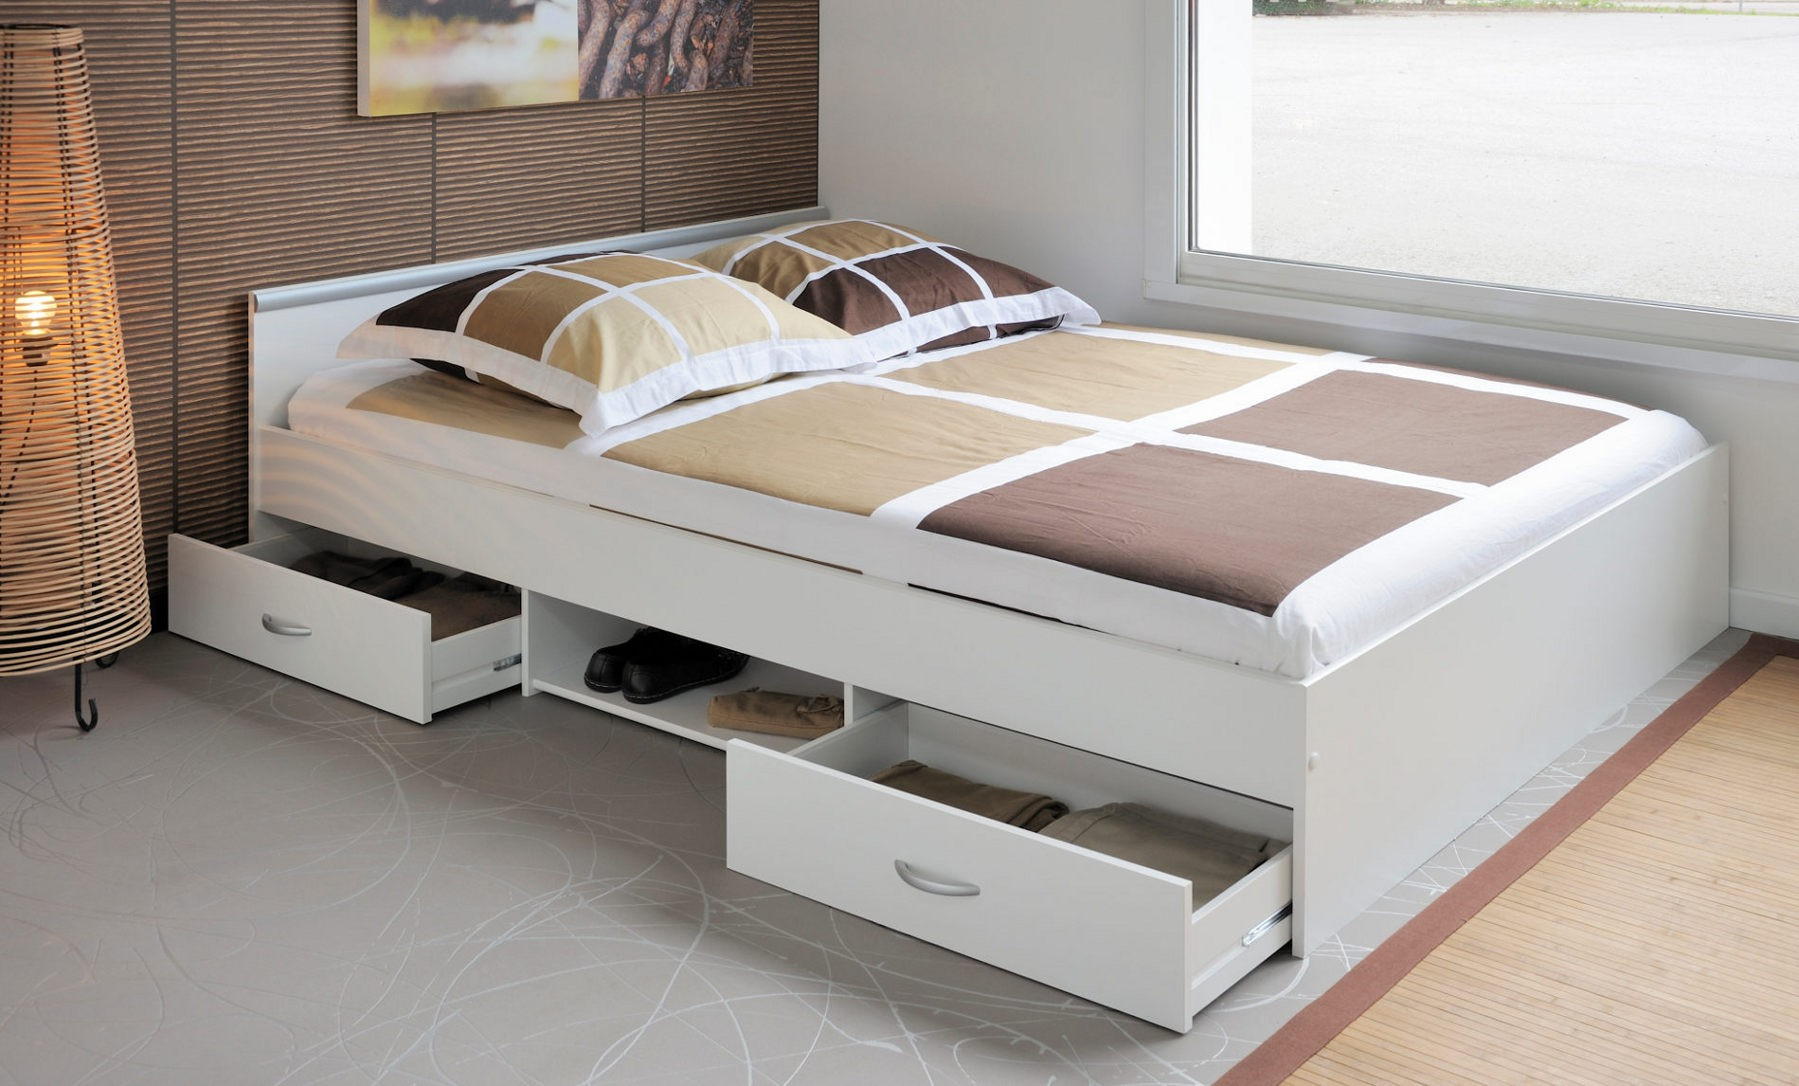 Ikea Canapés Convertibles Impressionnant Stock Article with Tag Lit Matelas Pas Cher